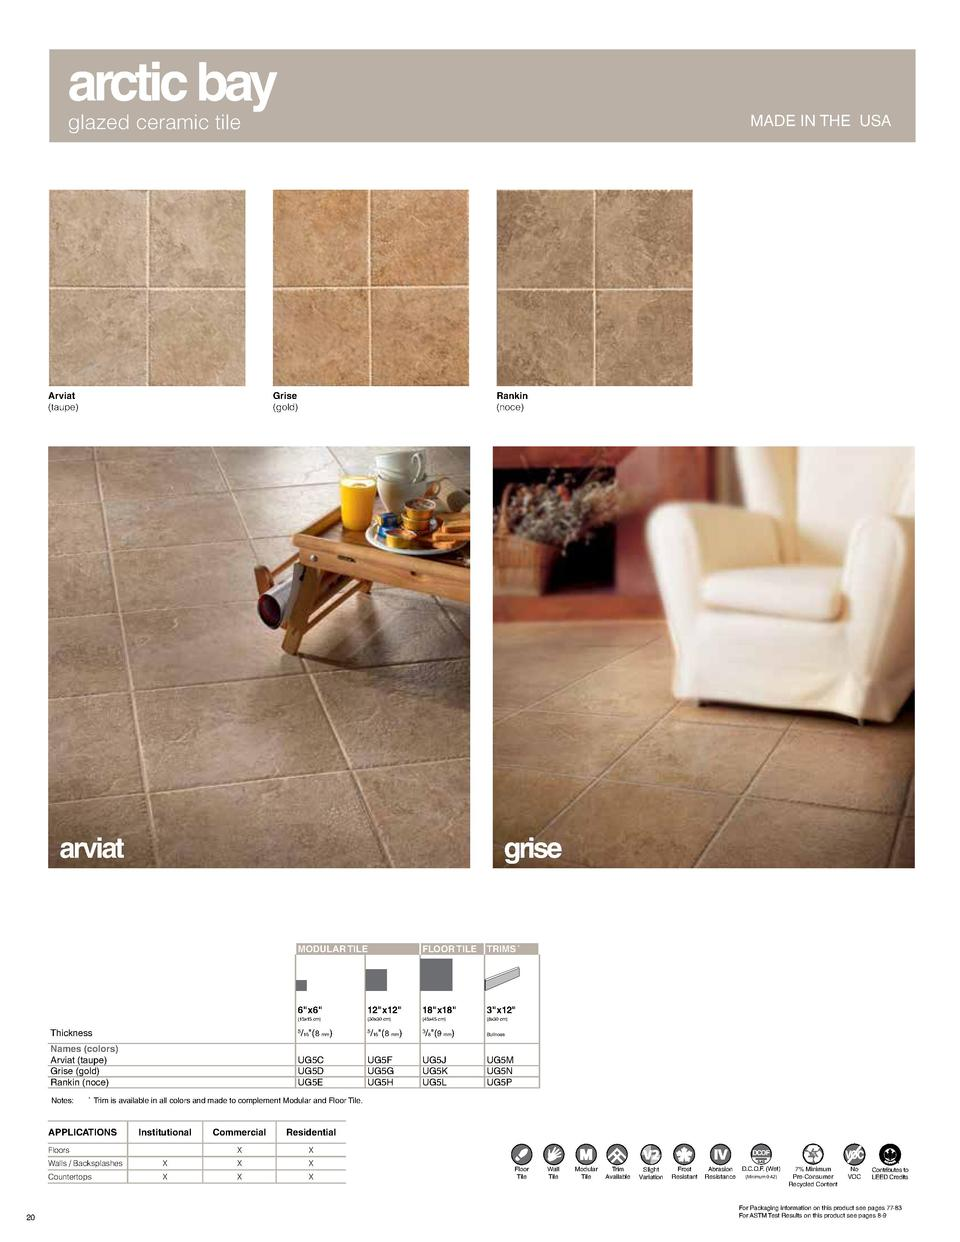 arctic bay glazed ceramic tile  Arviat  taupe   MADE IN THE USA  Grise  gold   Rankin  noce   arviat  grise  MODULAR TILE ...